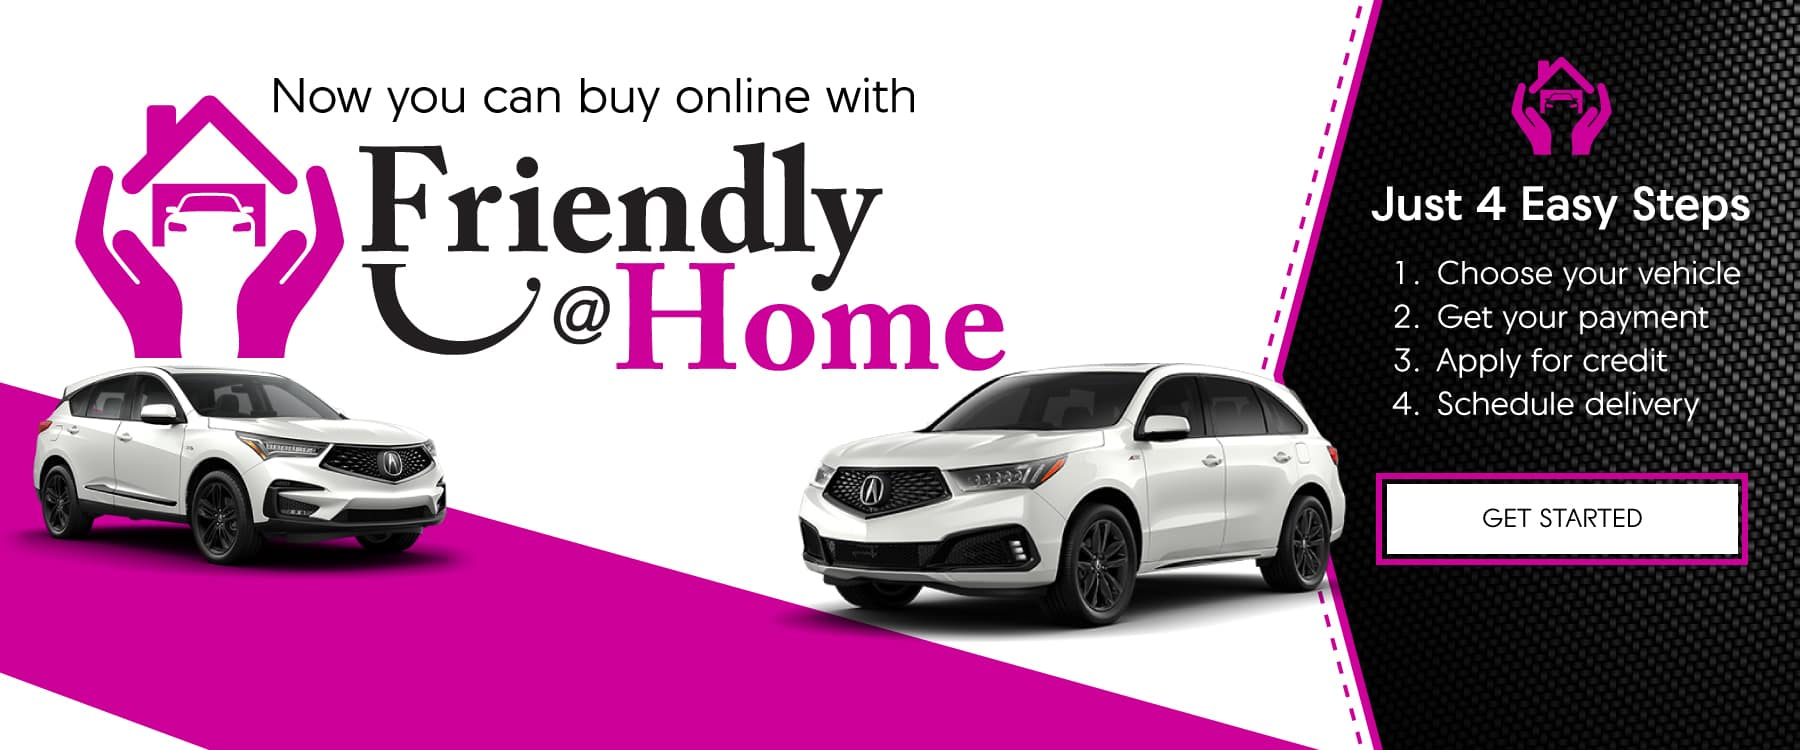 Friendly-At-Home—Buy-Online—PINK